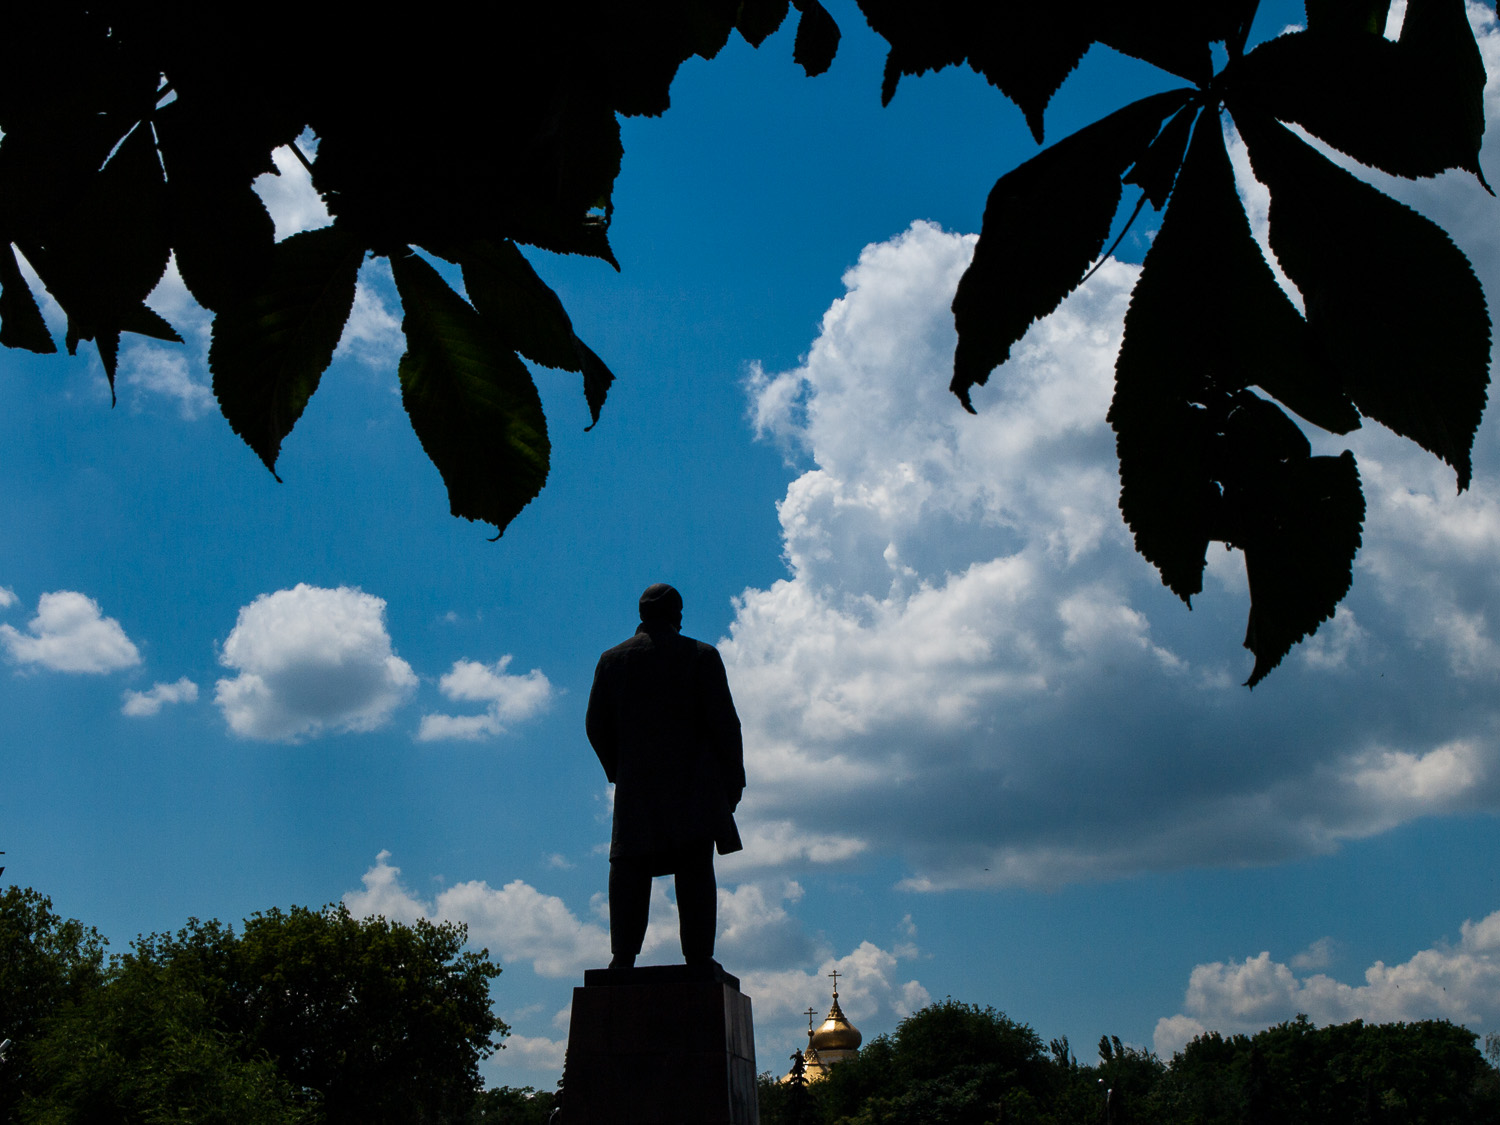 A statue of Lenin overlooks an Orthodox church in the town of Pavlograd. Since the Euromaidan uprisings of 2014, many Lenin statues have been torn down from towns and cities in Ukraine's eastern regions.